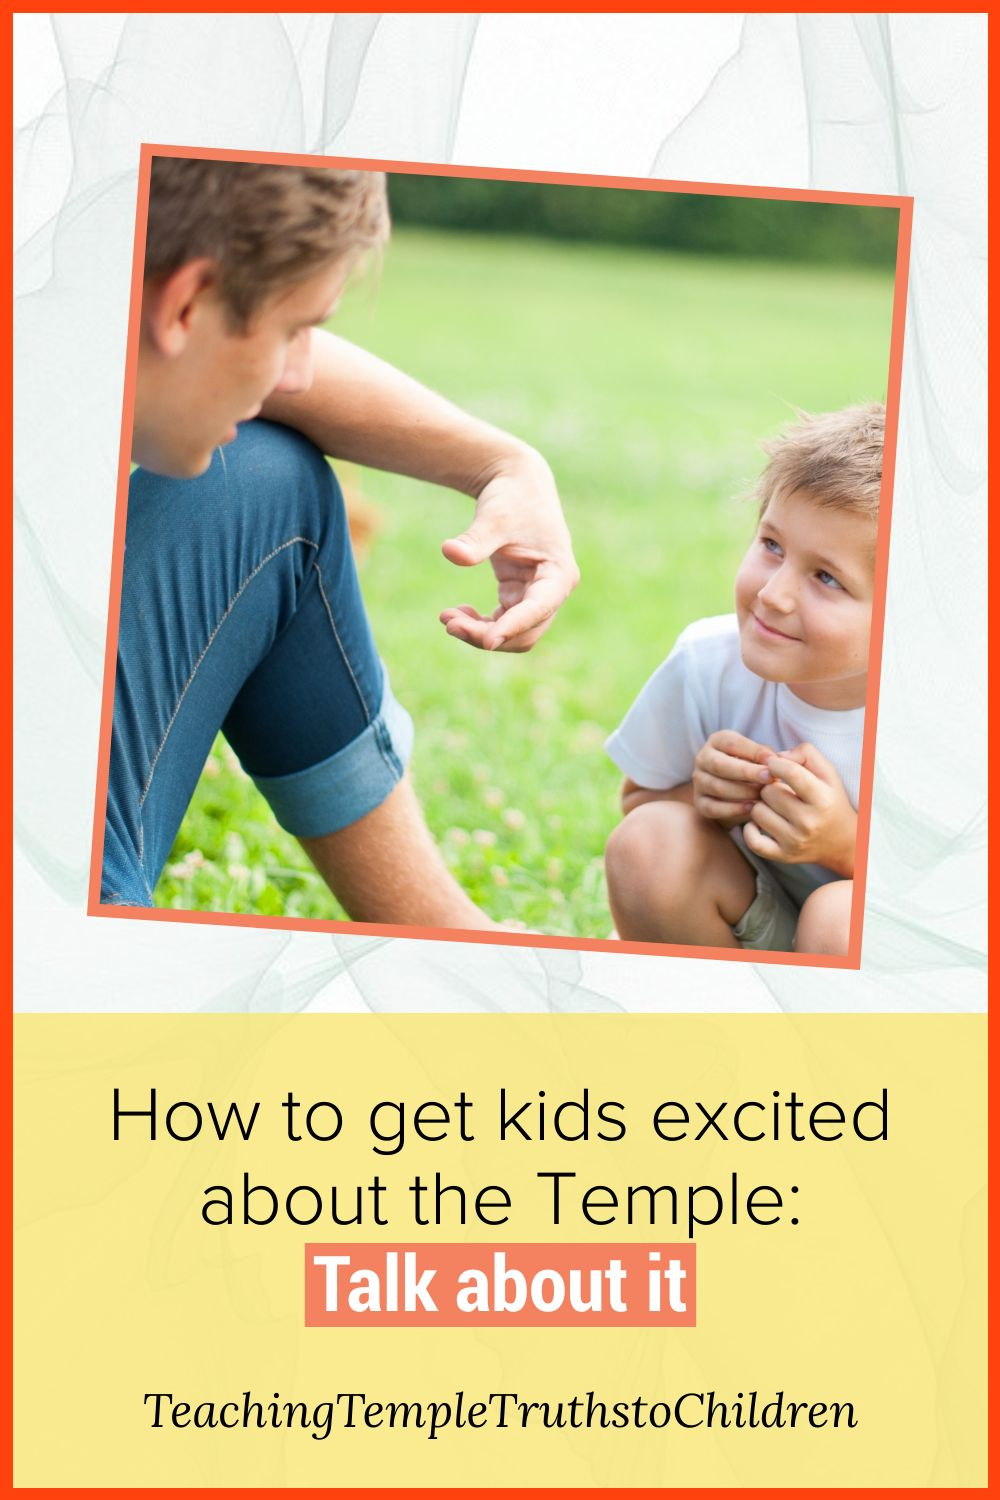 How to get kids excited about the Temple: Talk to them